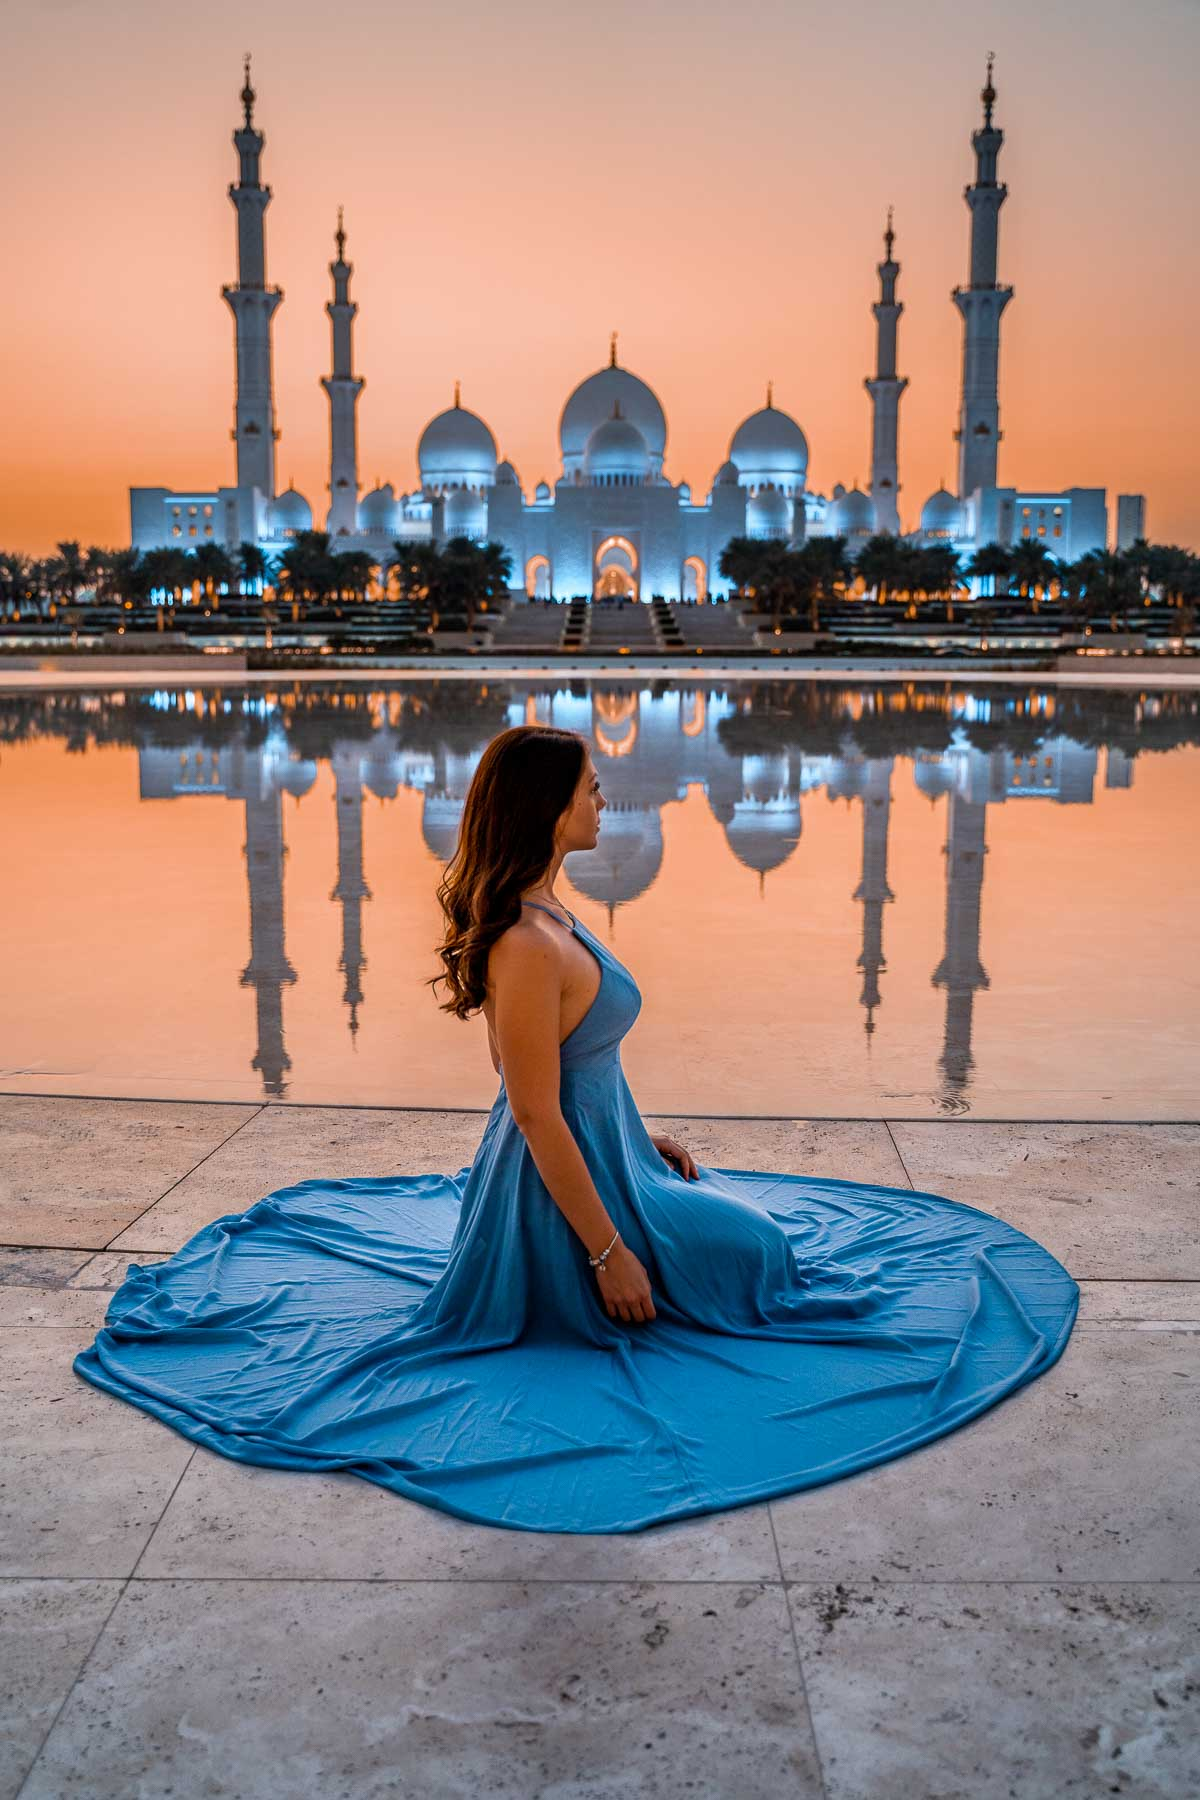 View of the Sheikh Zayed Grand Mosque at sunset from Wahat al Karama, one of the best Instagram spots in Abu Dhabi